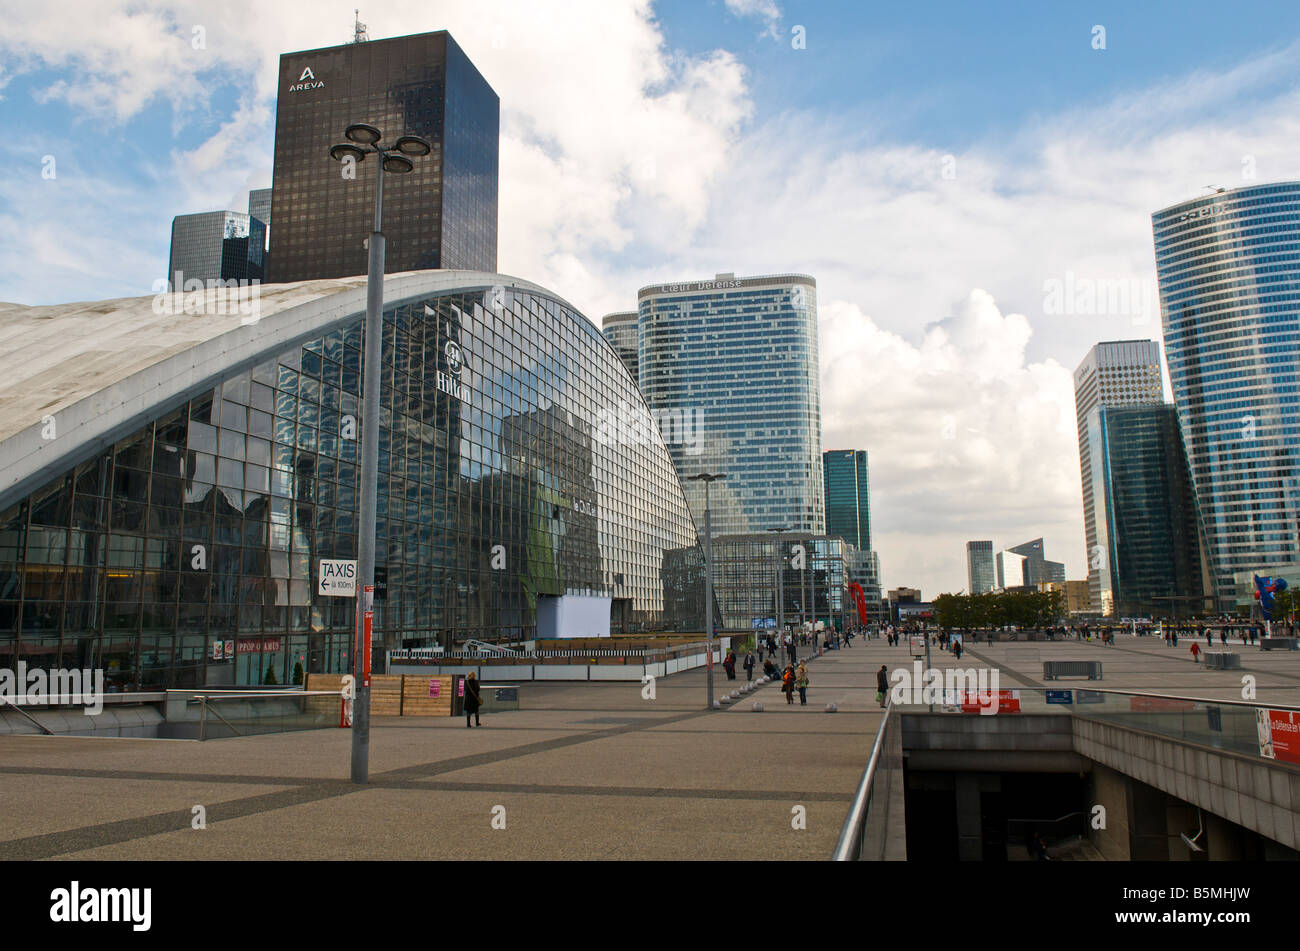 la defence business park in paris france stock photo royalty free image 20736545 alamy. Black Bedroom Furniture Sets. Home Design Ideas